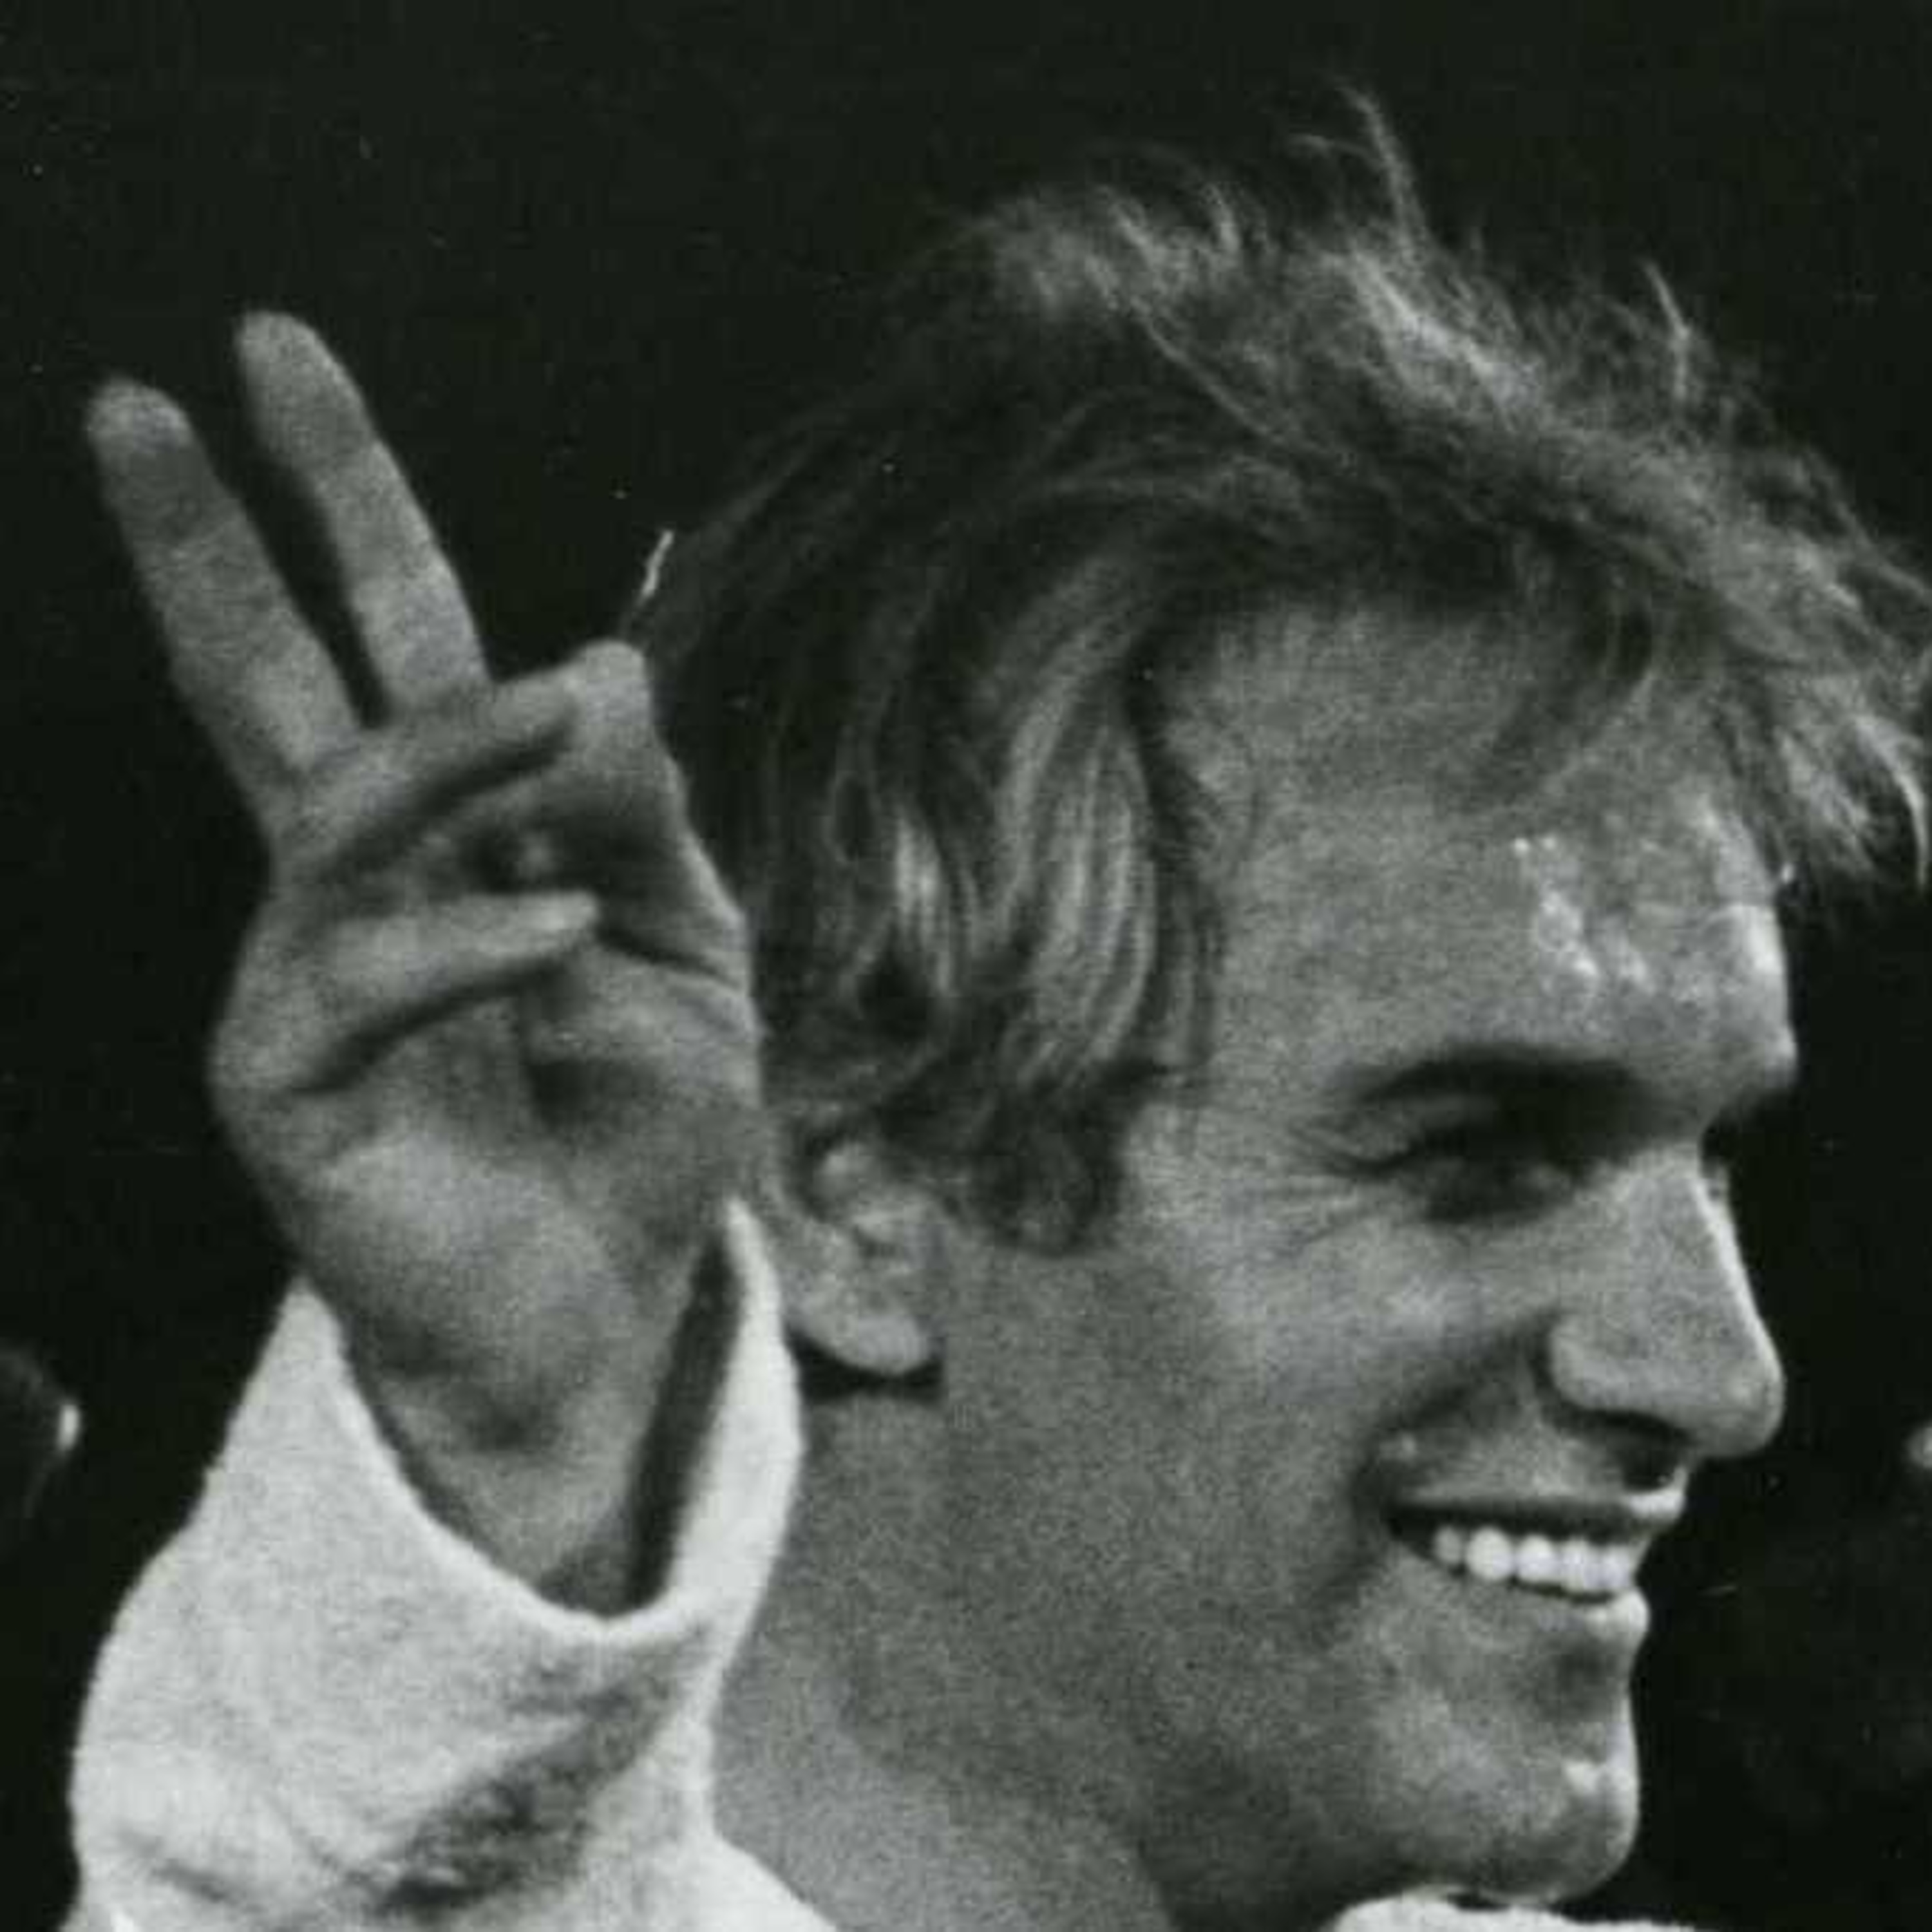 John Hannam Meets Freddie Starr - Archive Edition